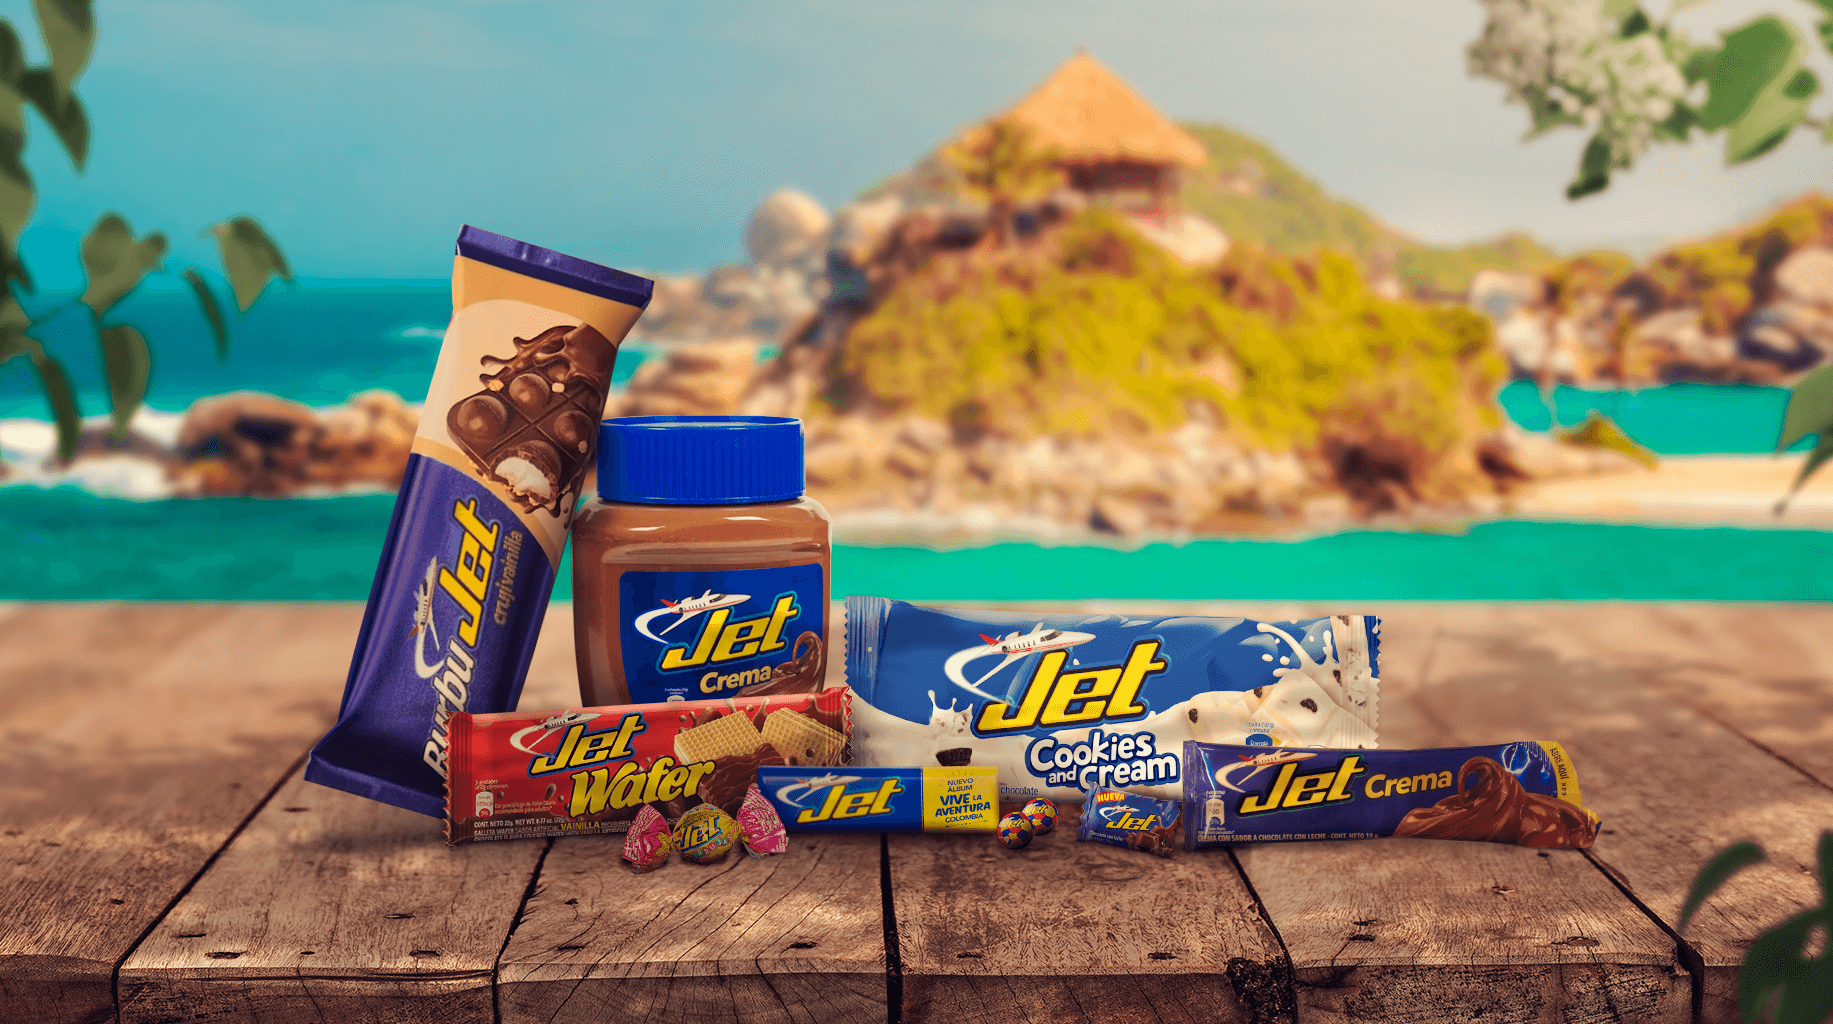 productos-jet-home